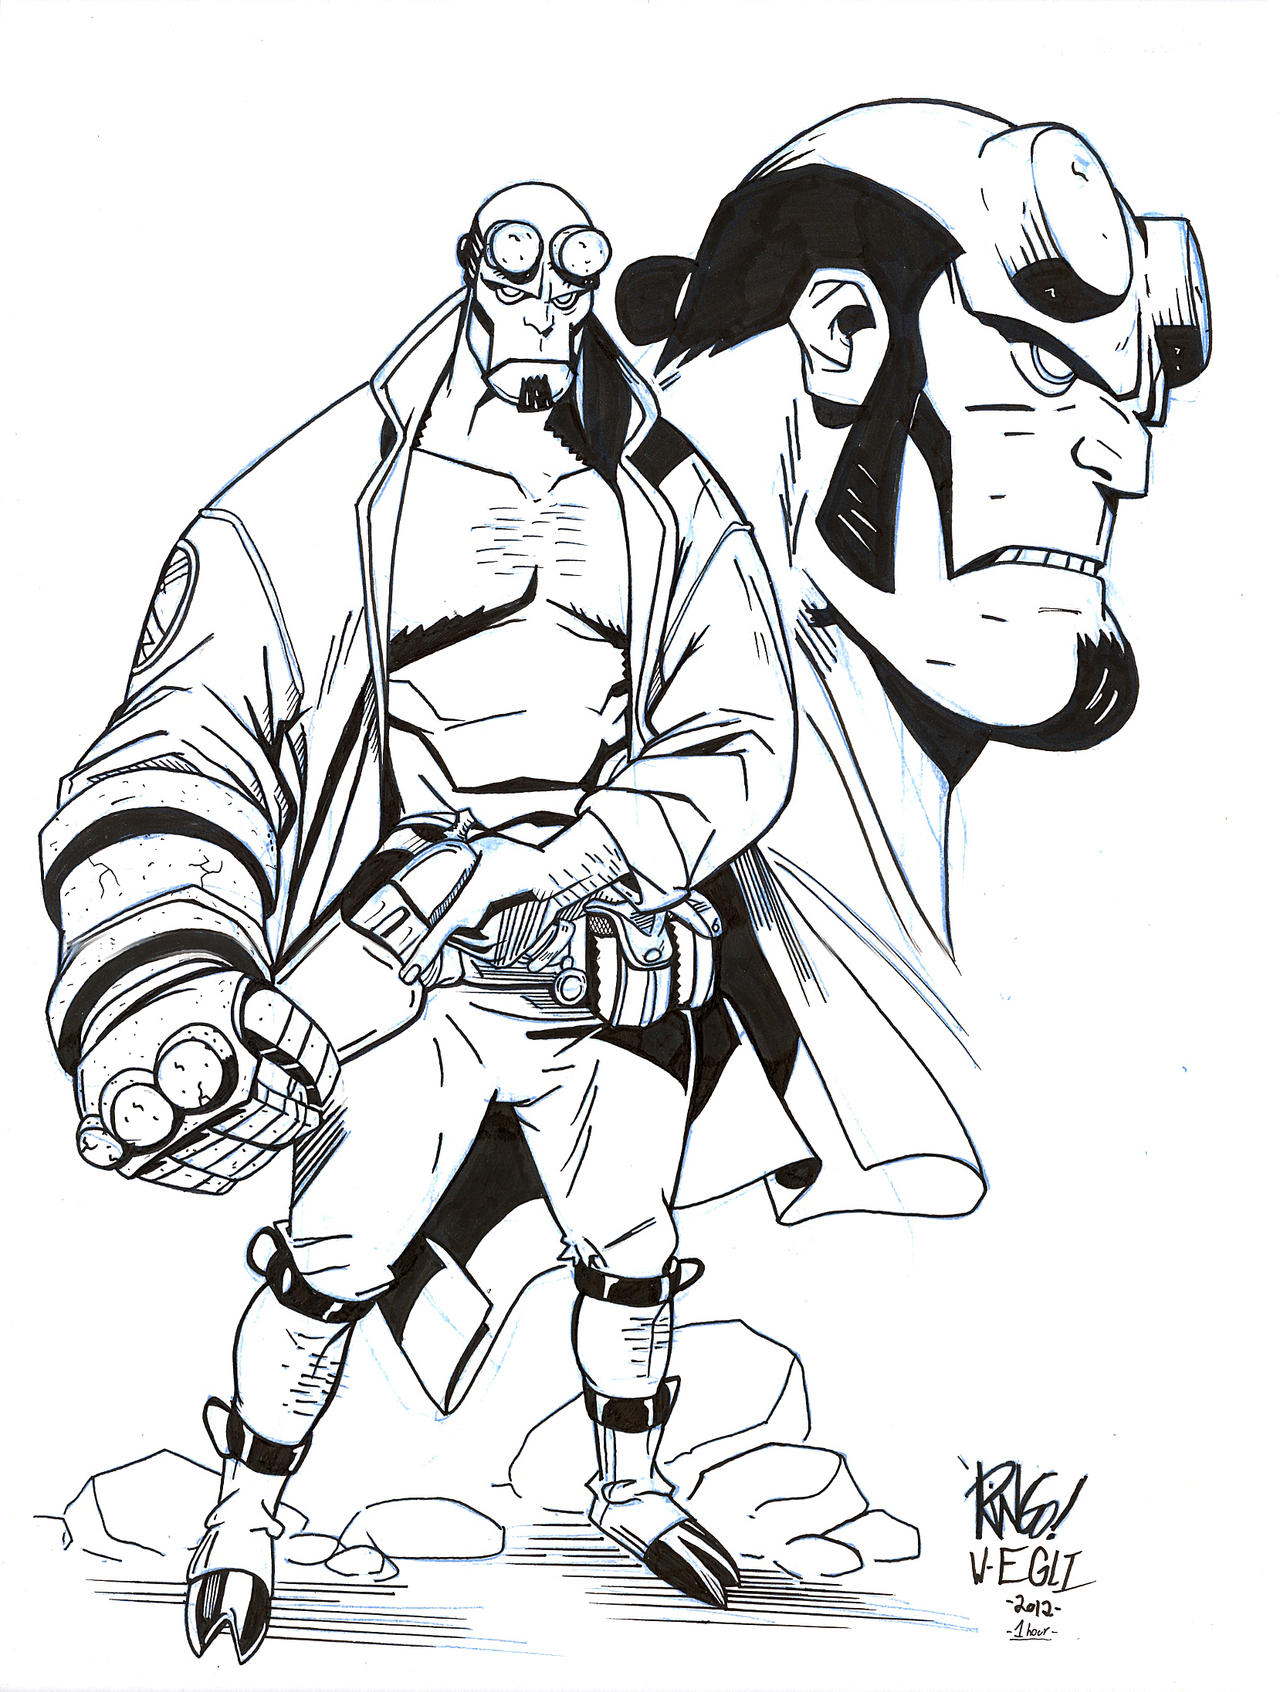 Coloring Pages Hellboy Coloring Pages hellboy coloring pages eassume com updated pg fegredo by spicercolor on deviantart